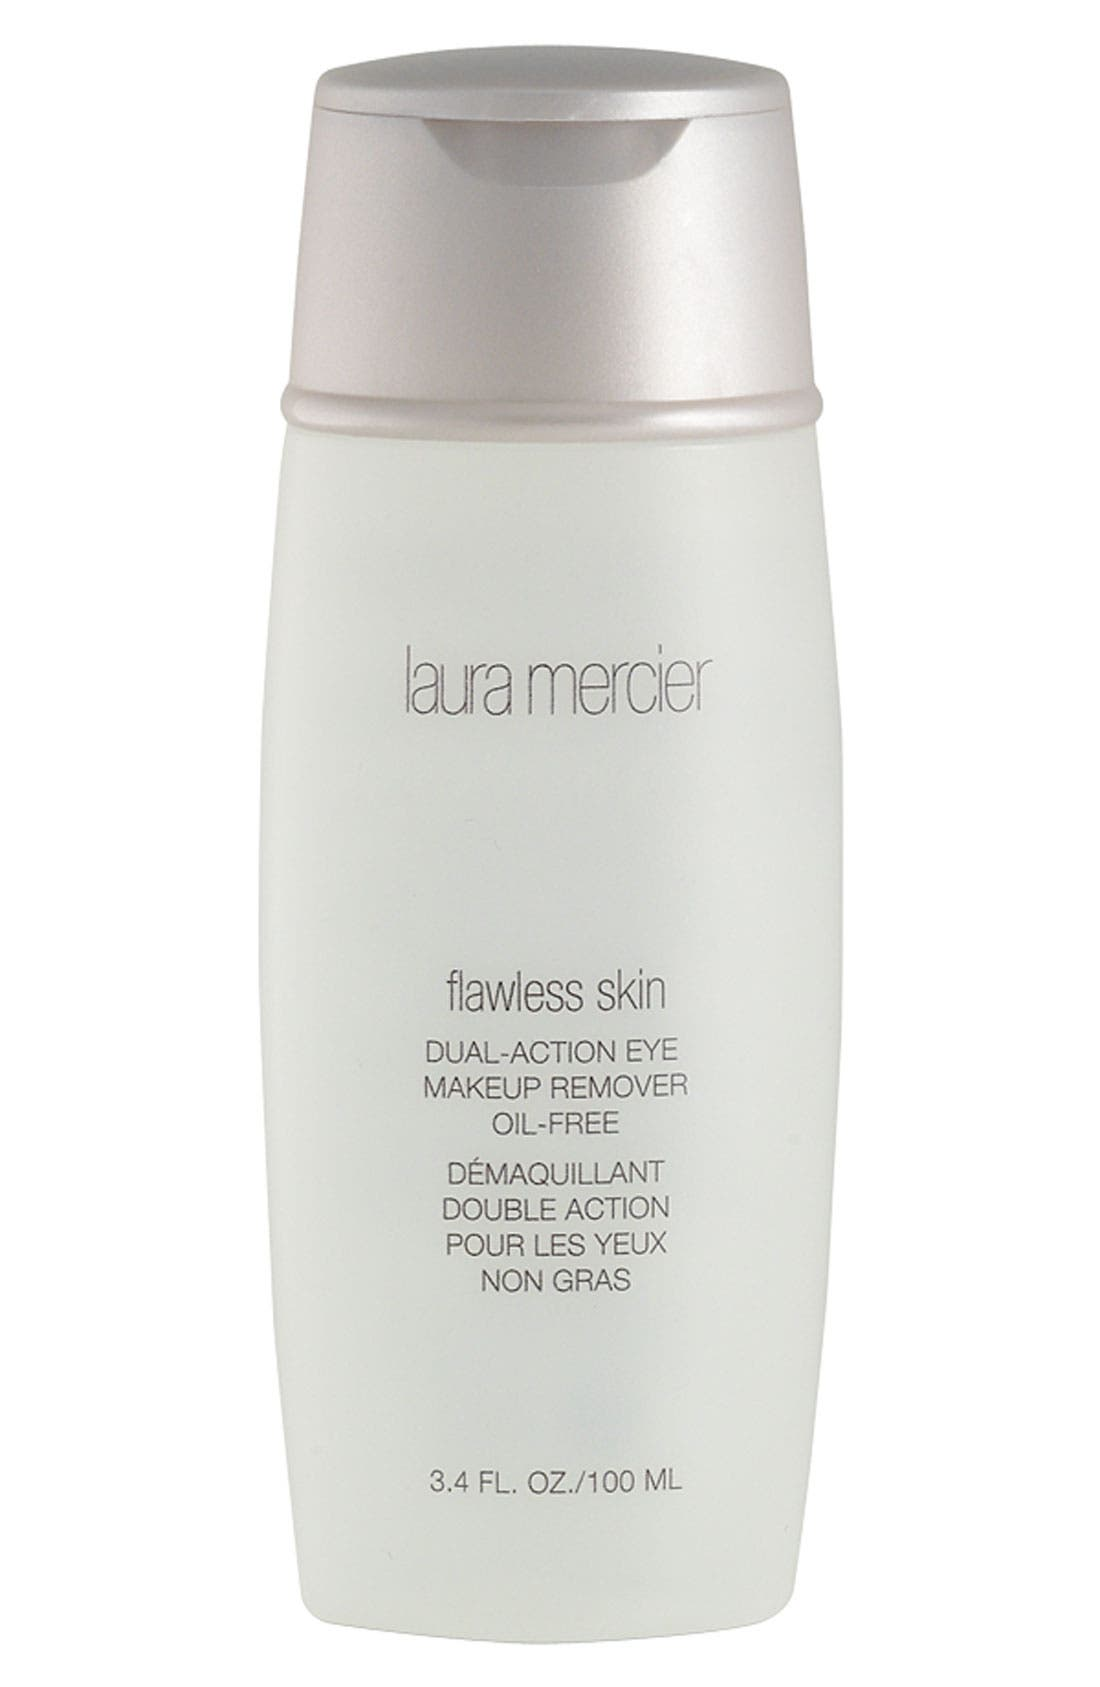 'Flawless Skin' Dual-Action Eye Makeup Remover,                         Main,                         color, NO COLOR